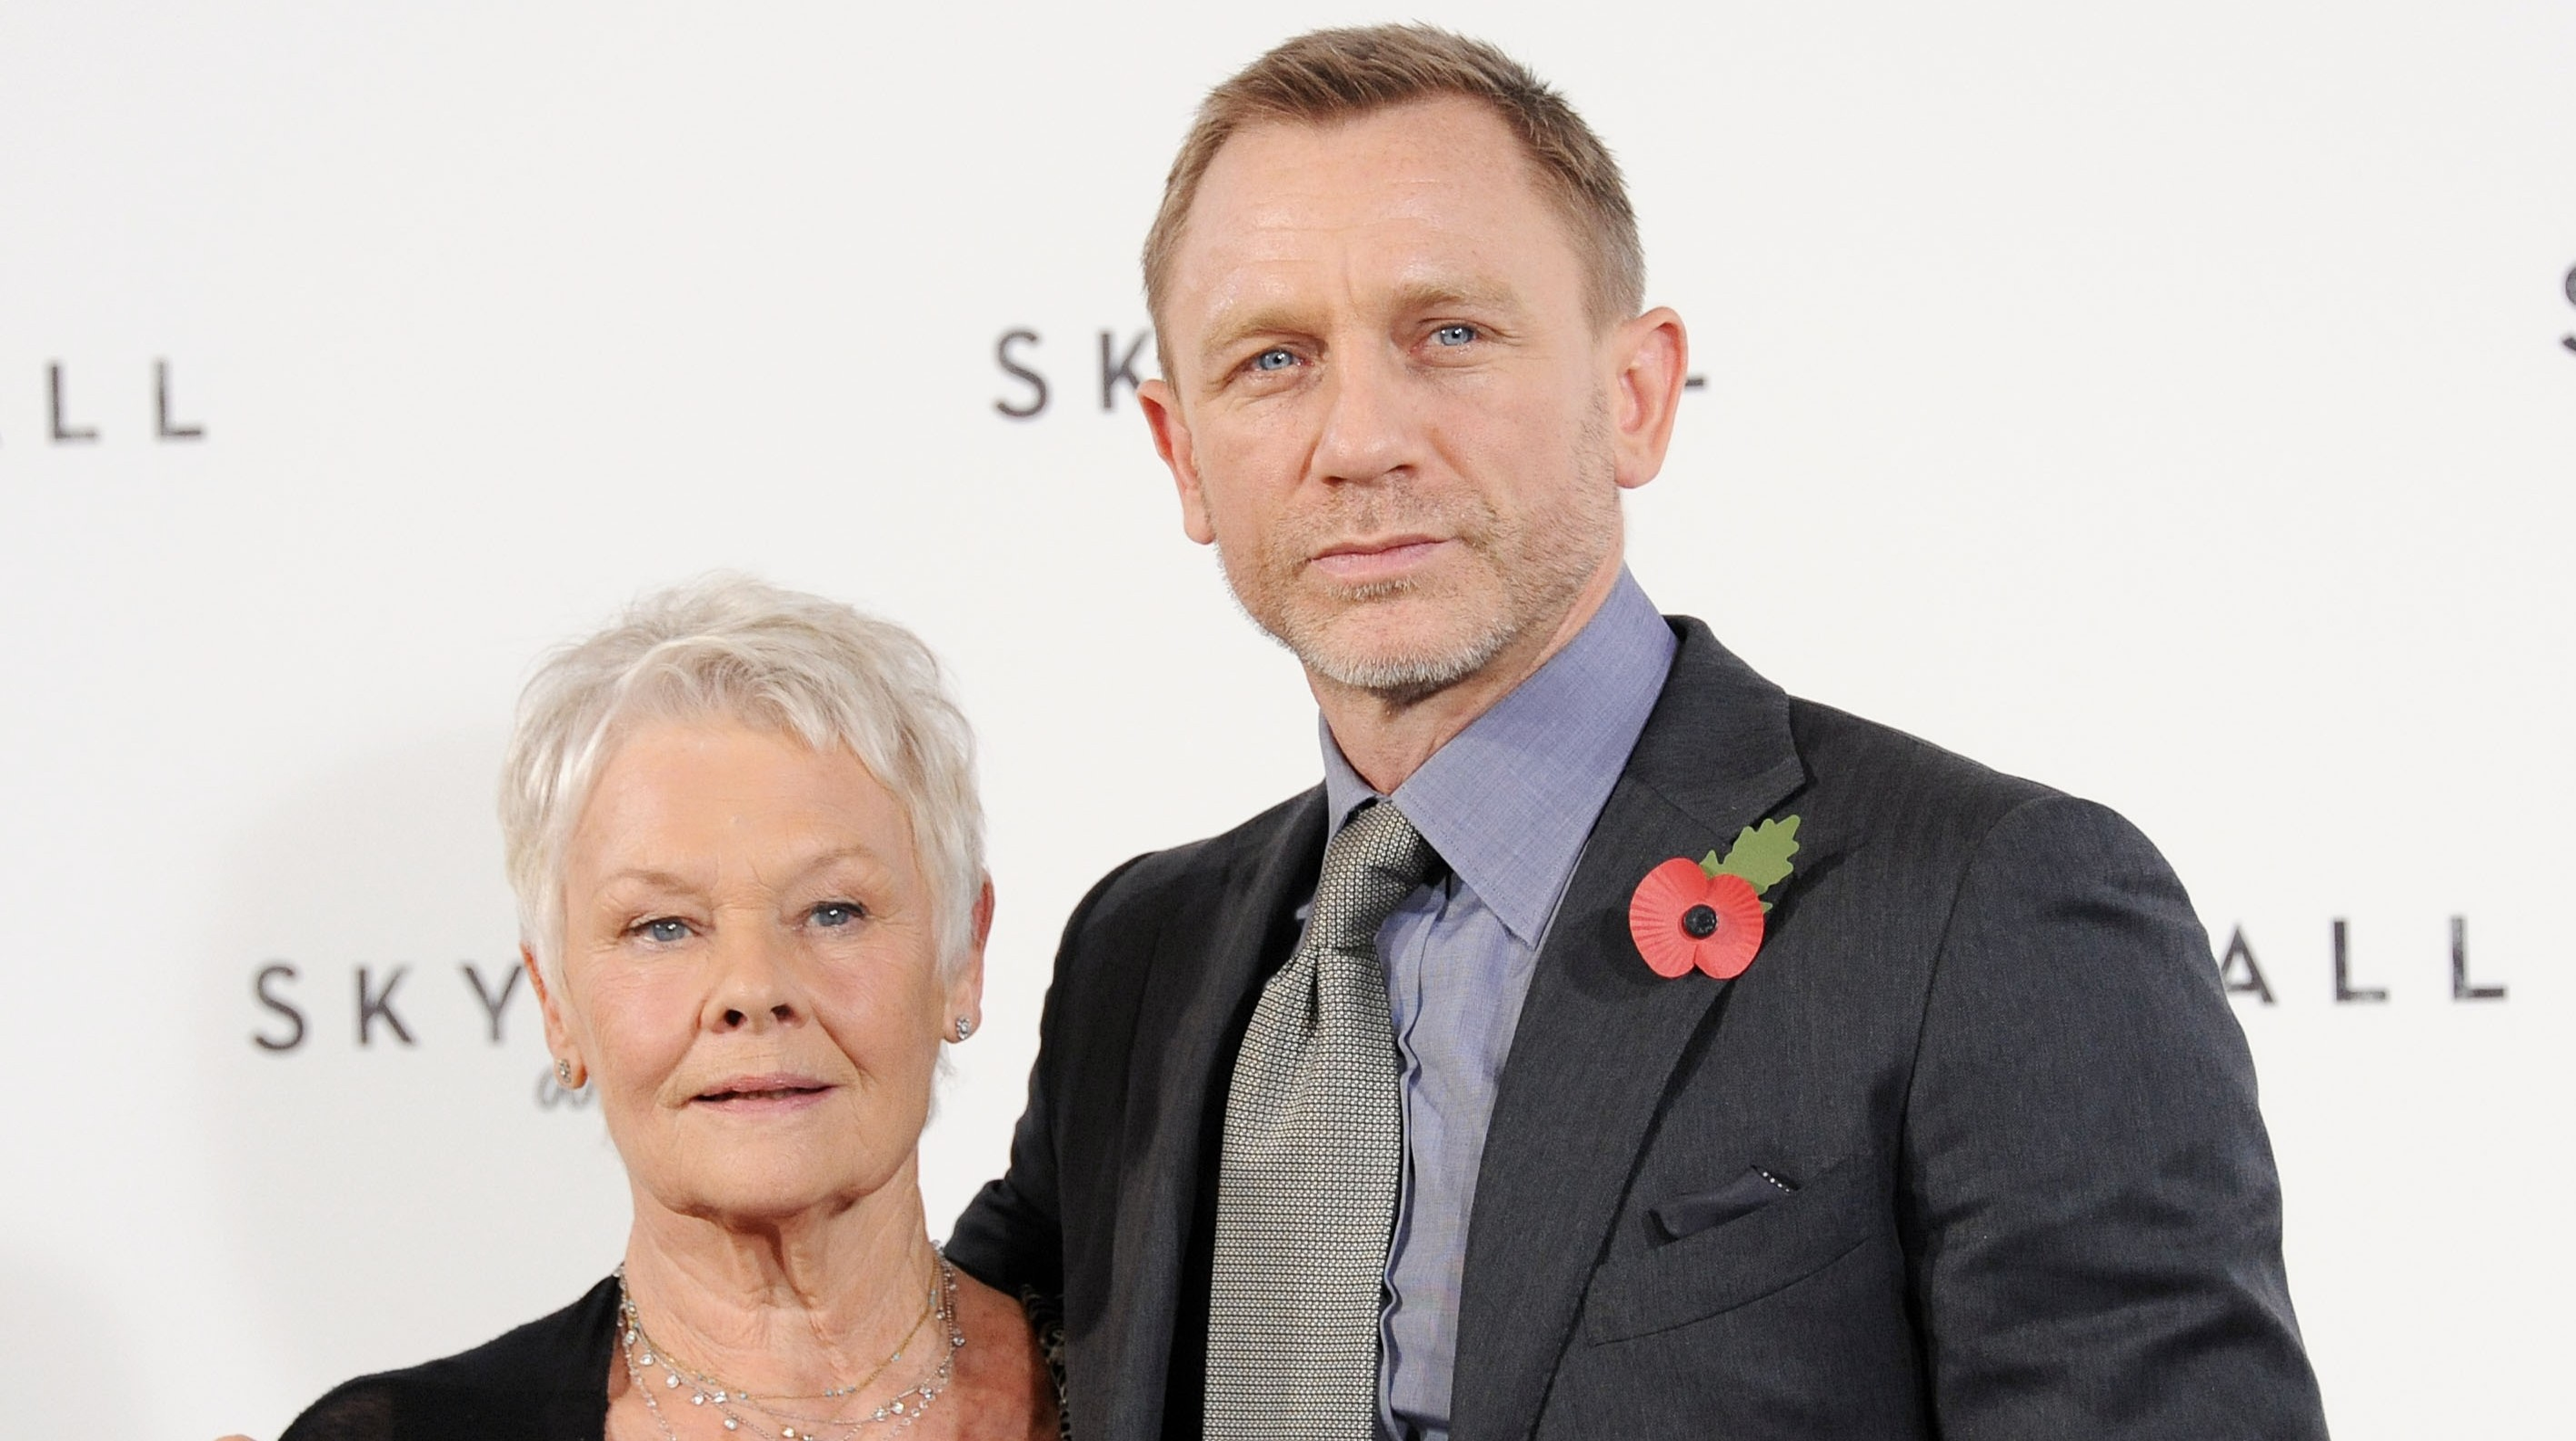 Judi Dench poses with Skyfall co-star Daniel Craig (Picture: Getty)